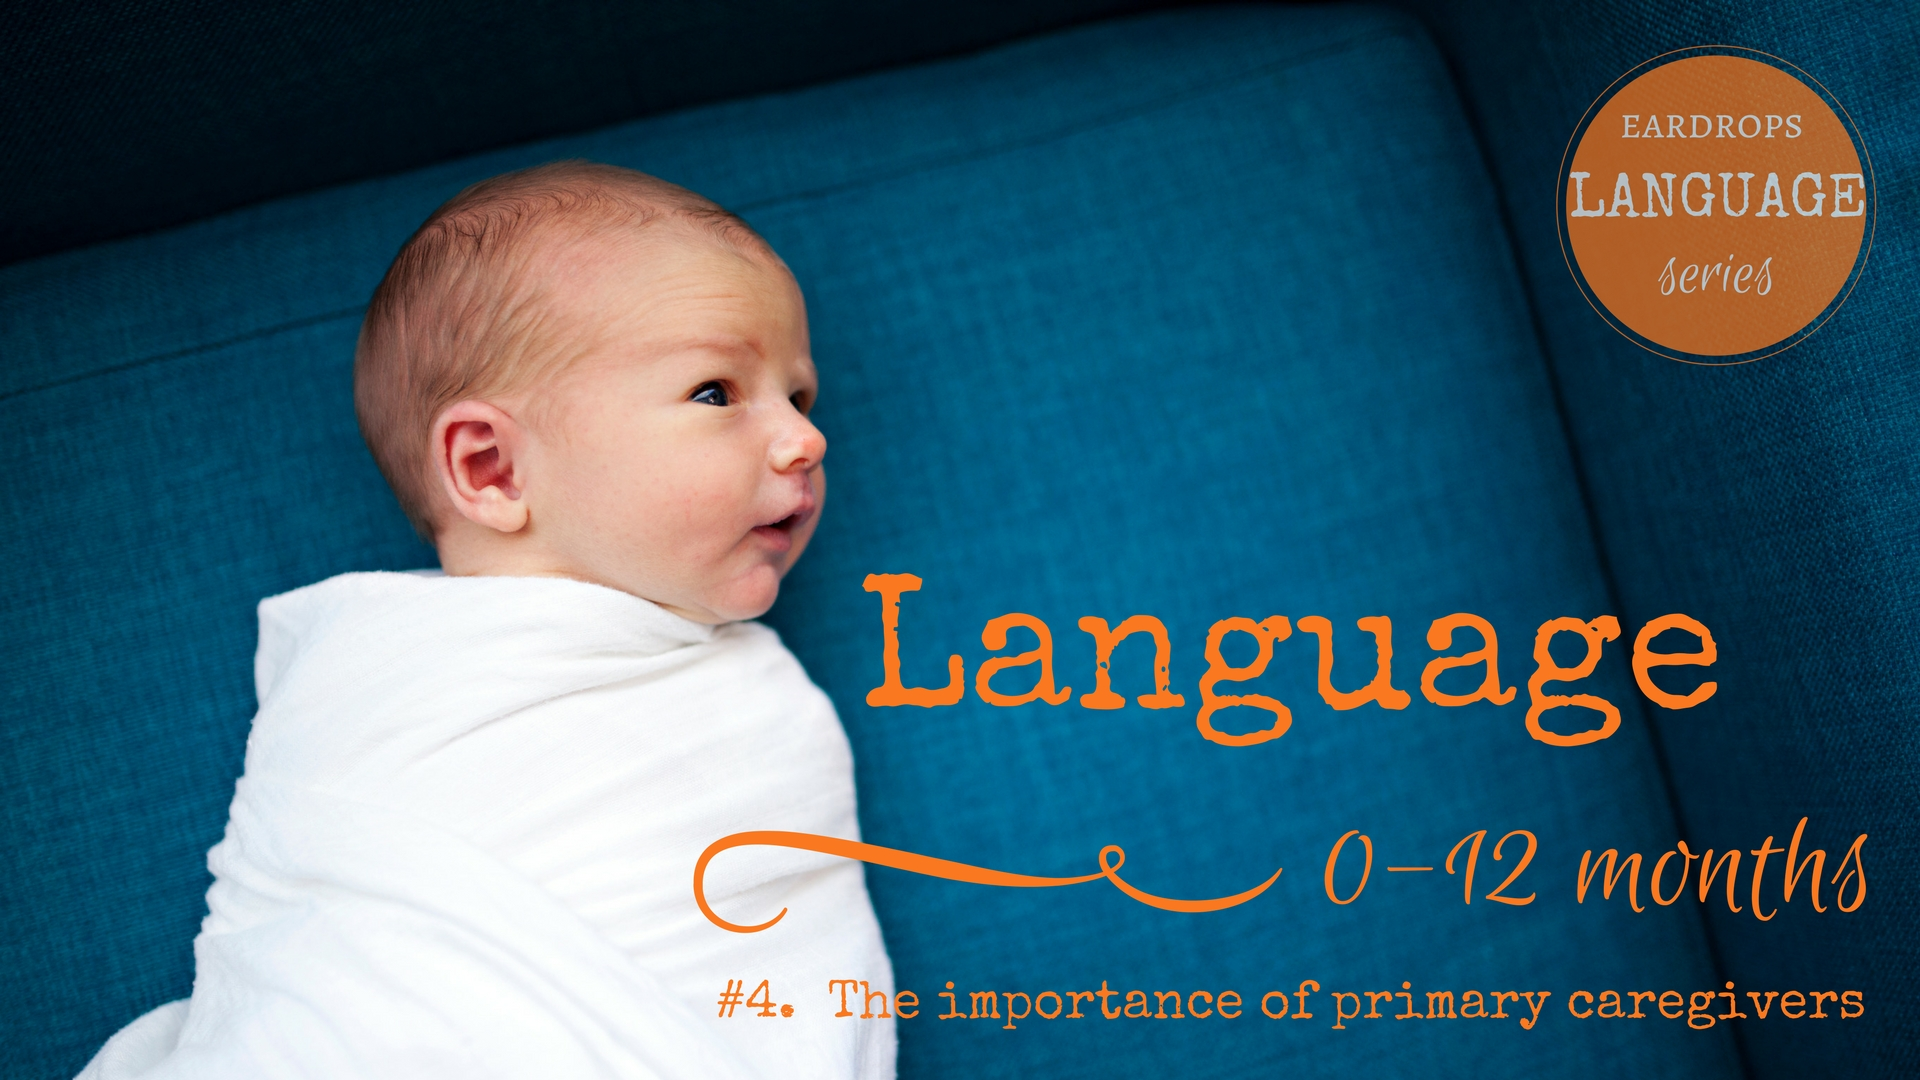 title page eardrops language series the importance of primary caregivers